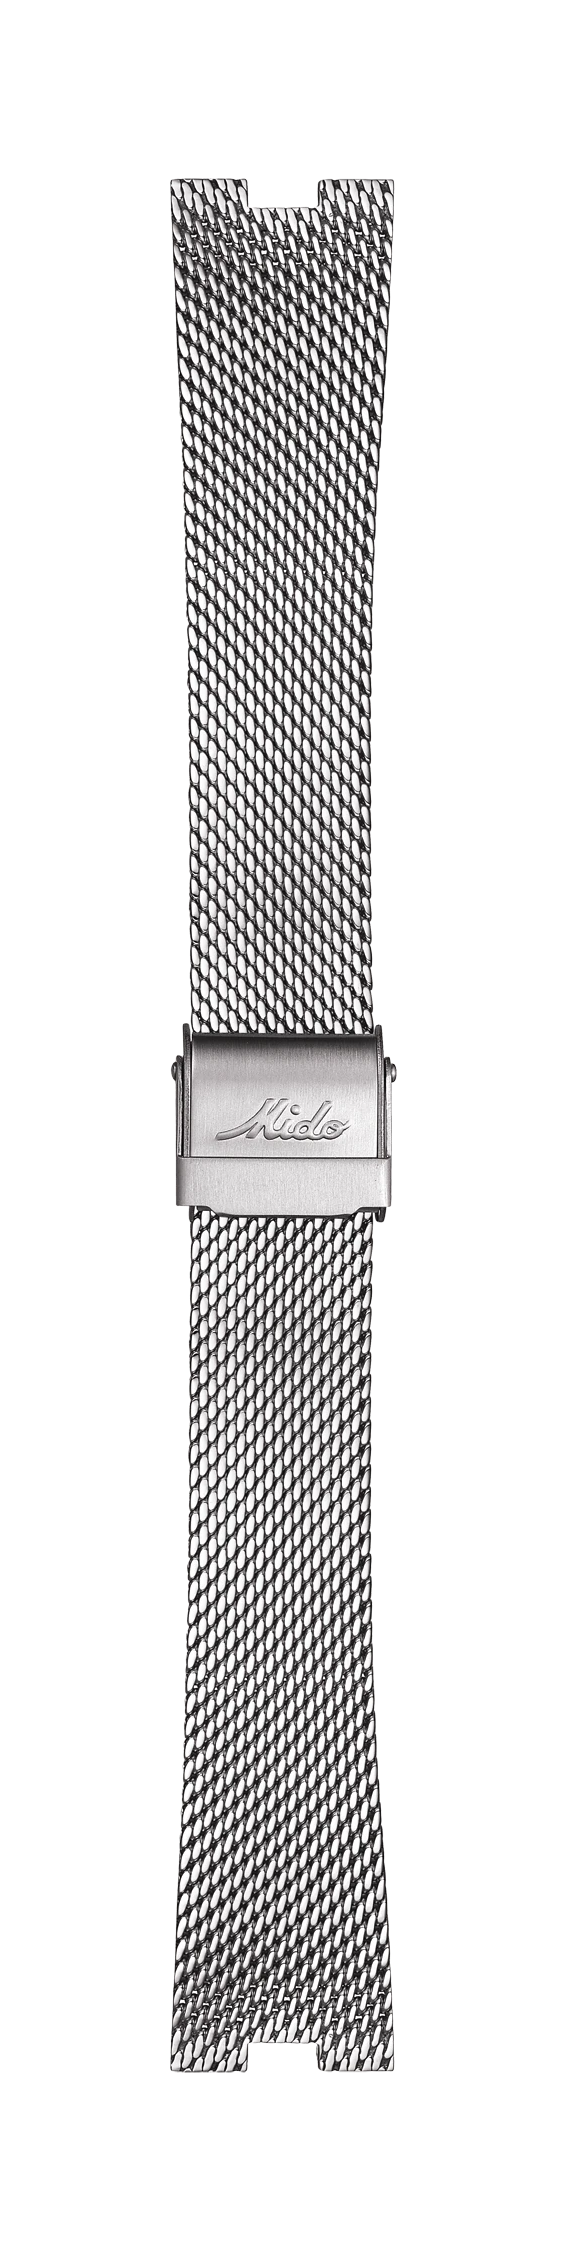 MIDO Commander 3880 Silver Mesh Watch Band Bracelet